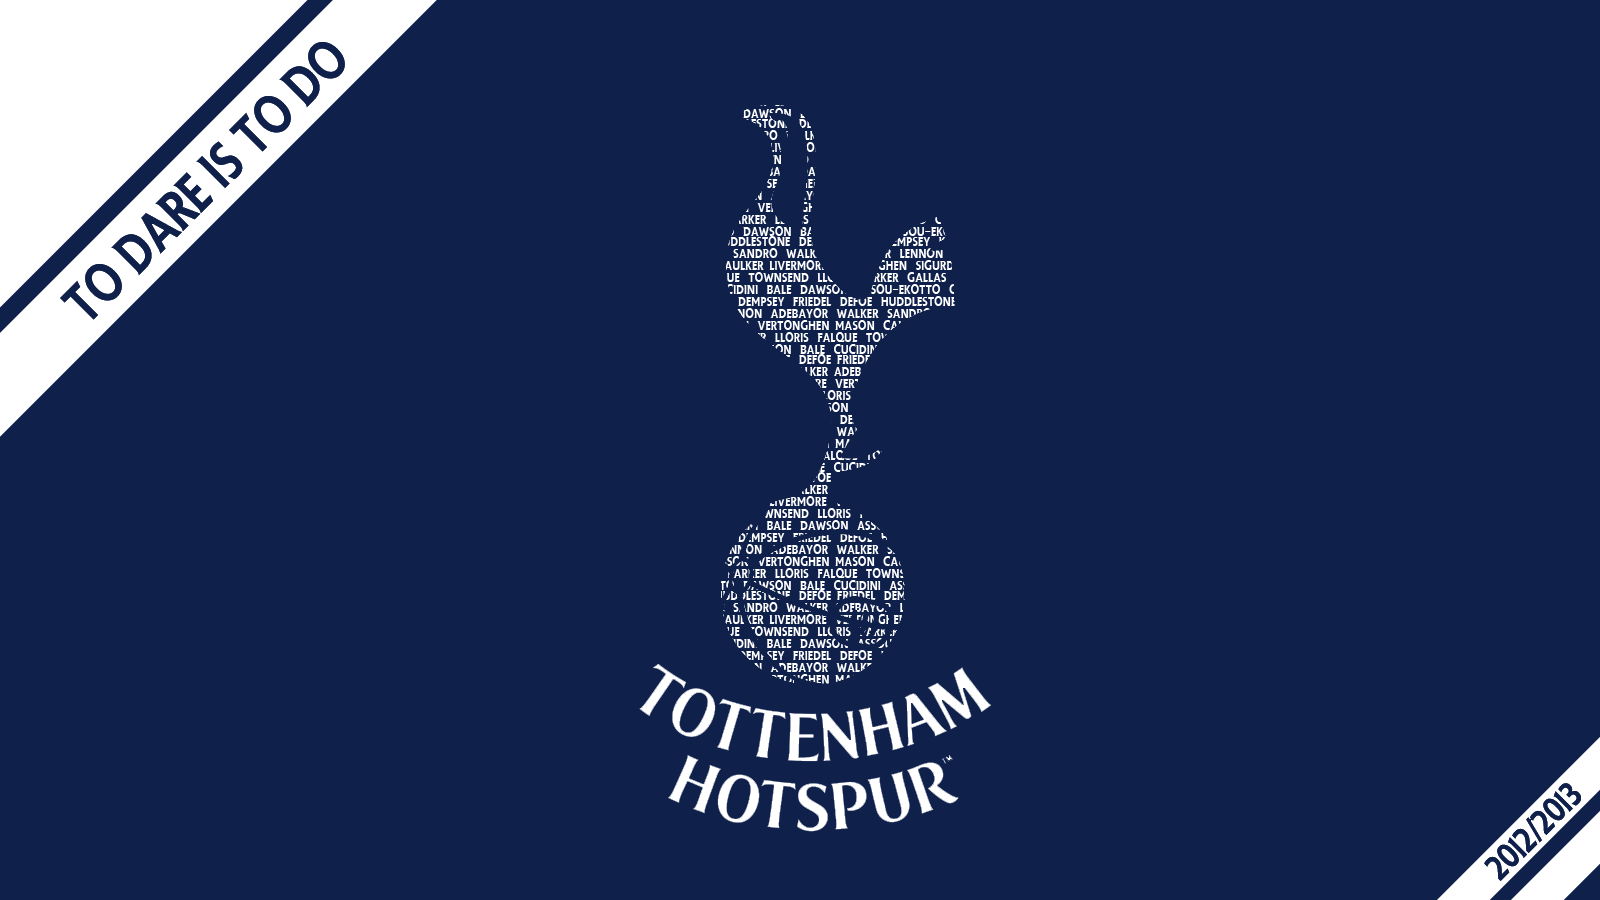 Tottenham Hotspurs Wallpaper Full Desktop